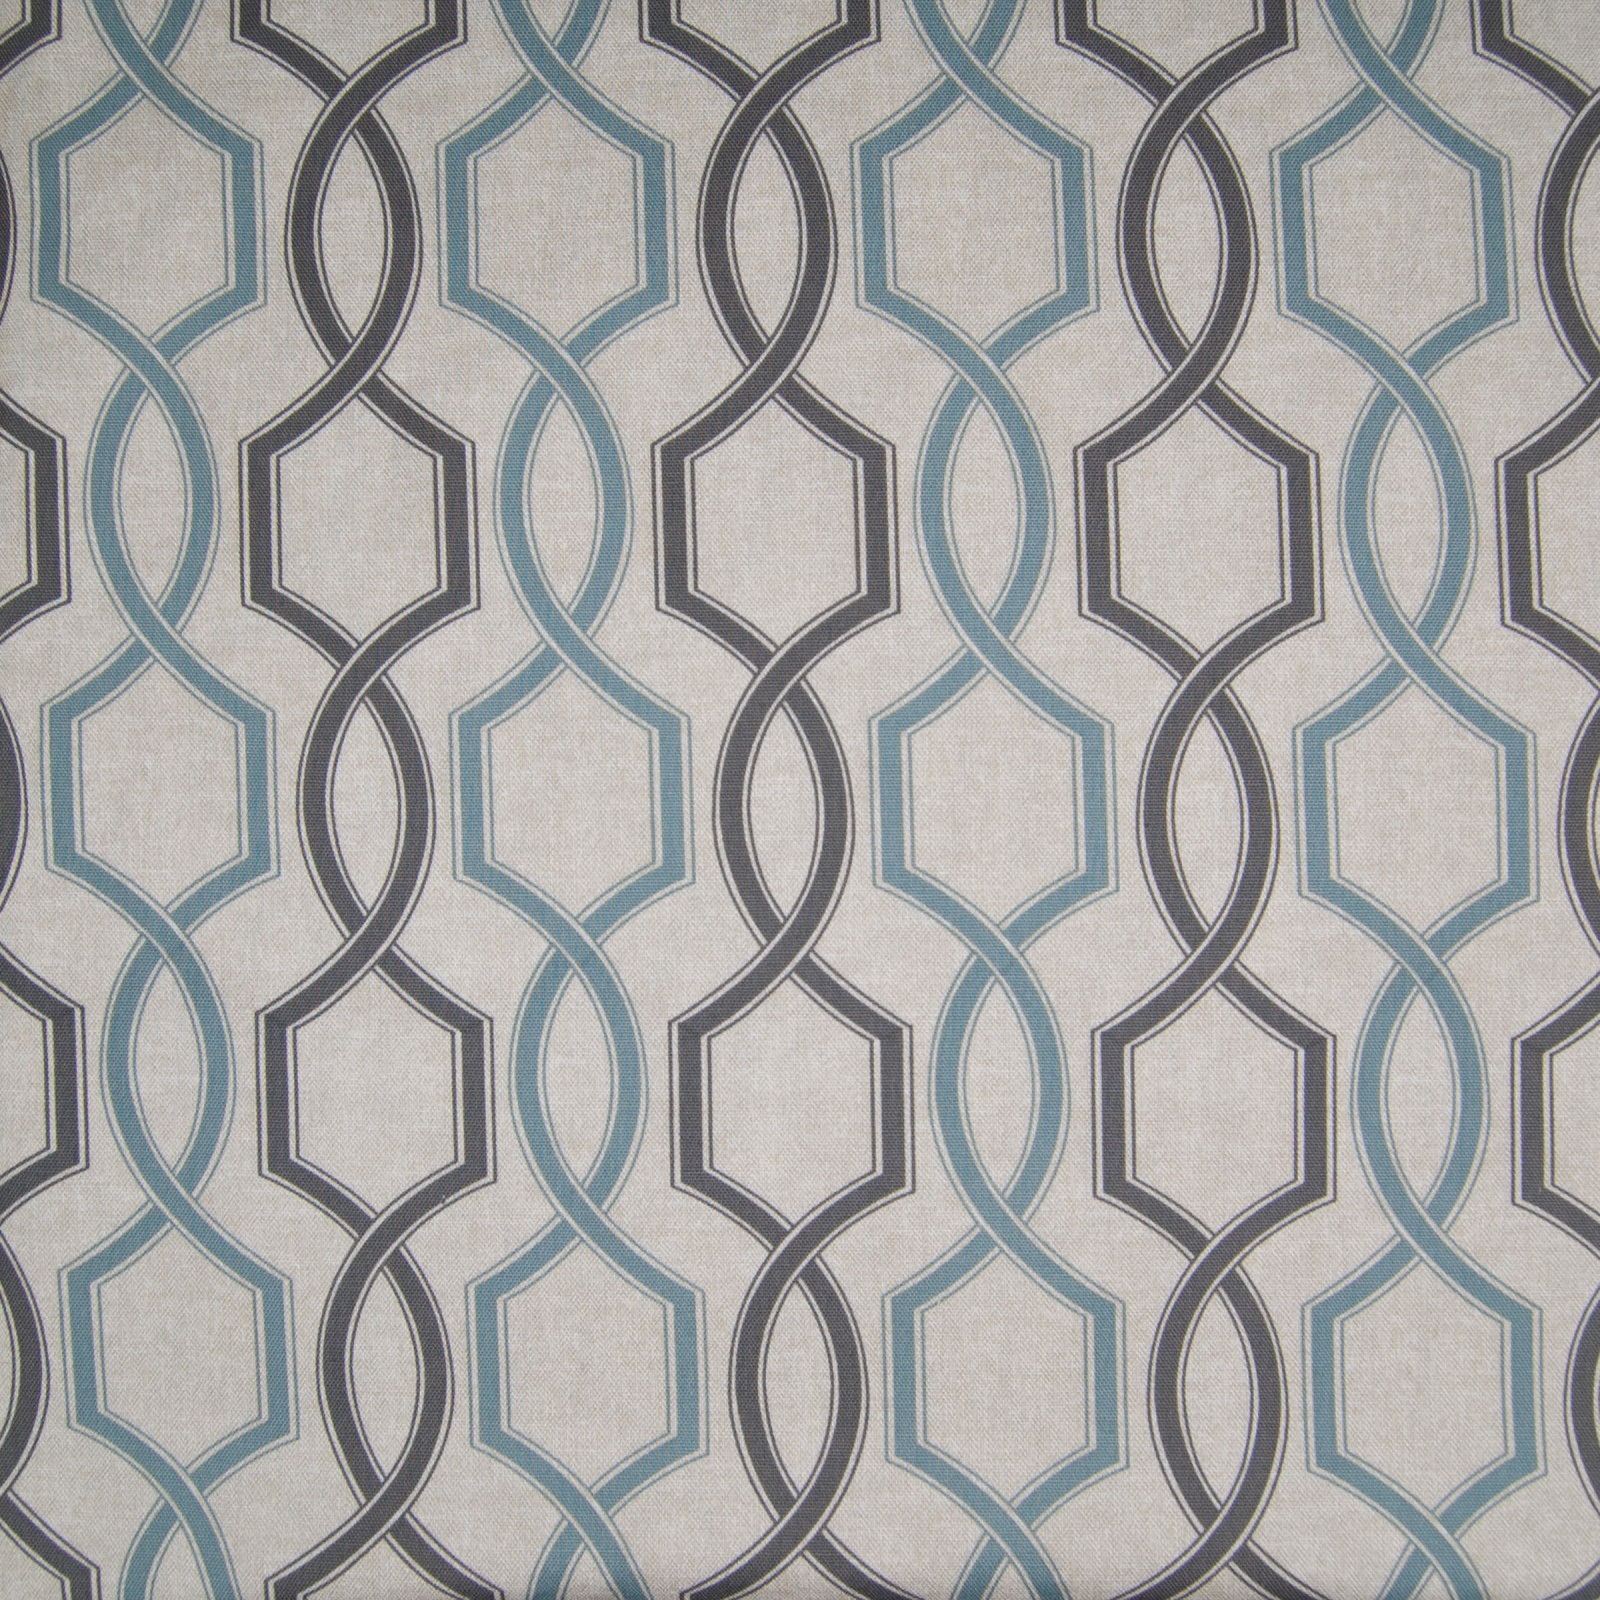 Seafoam Blue And Gray Geometric Cotton Upholstery Fabric